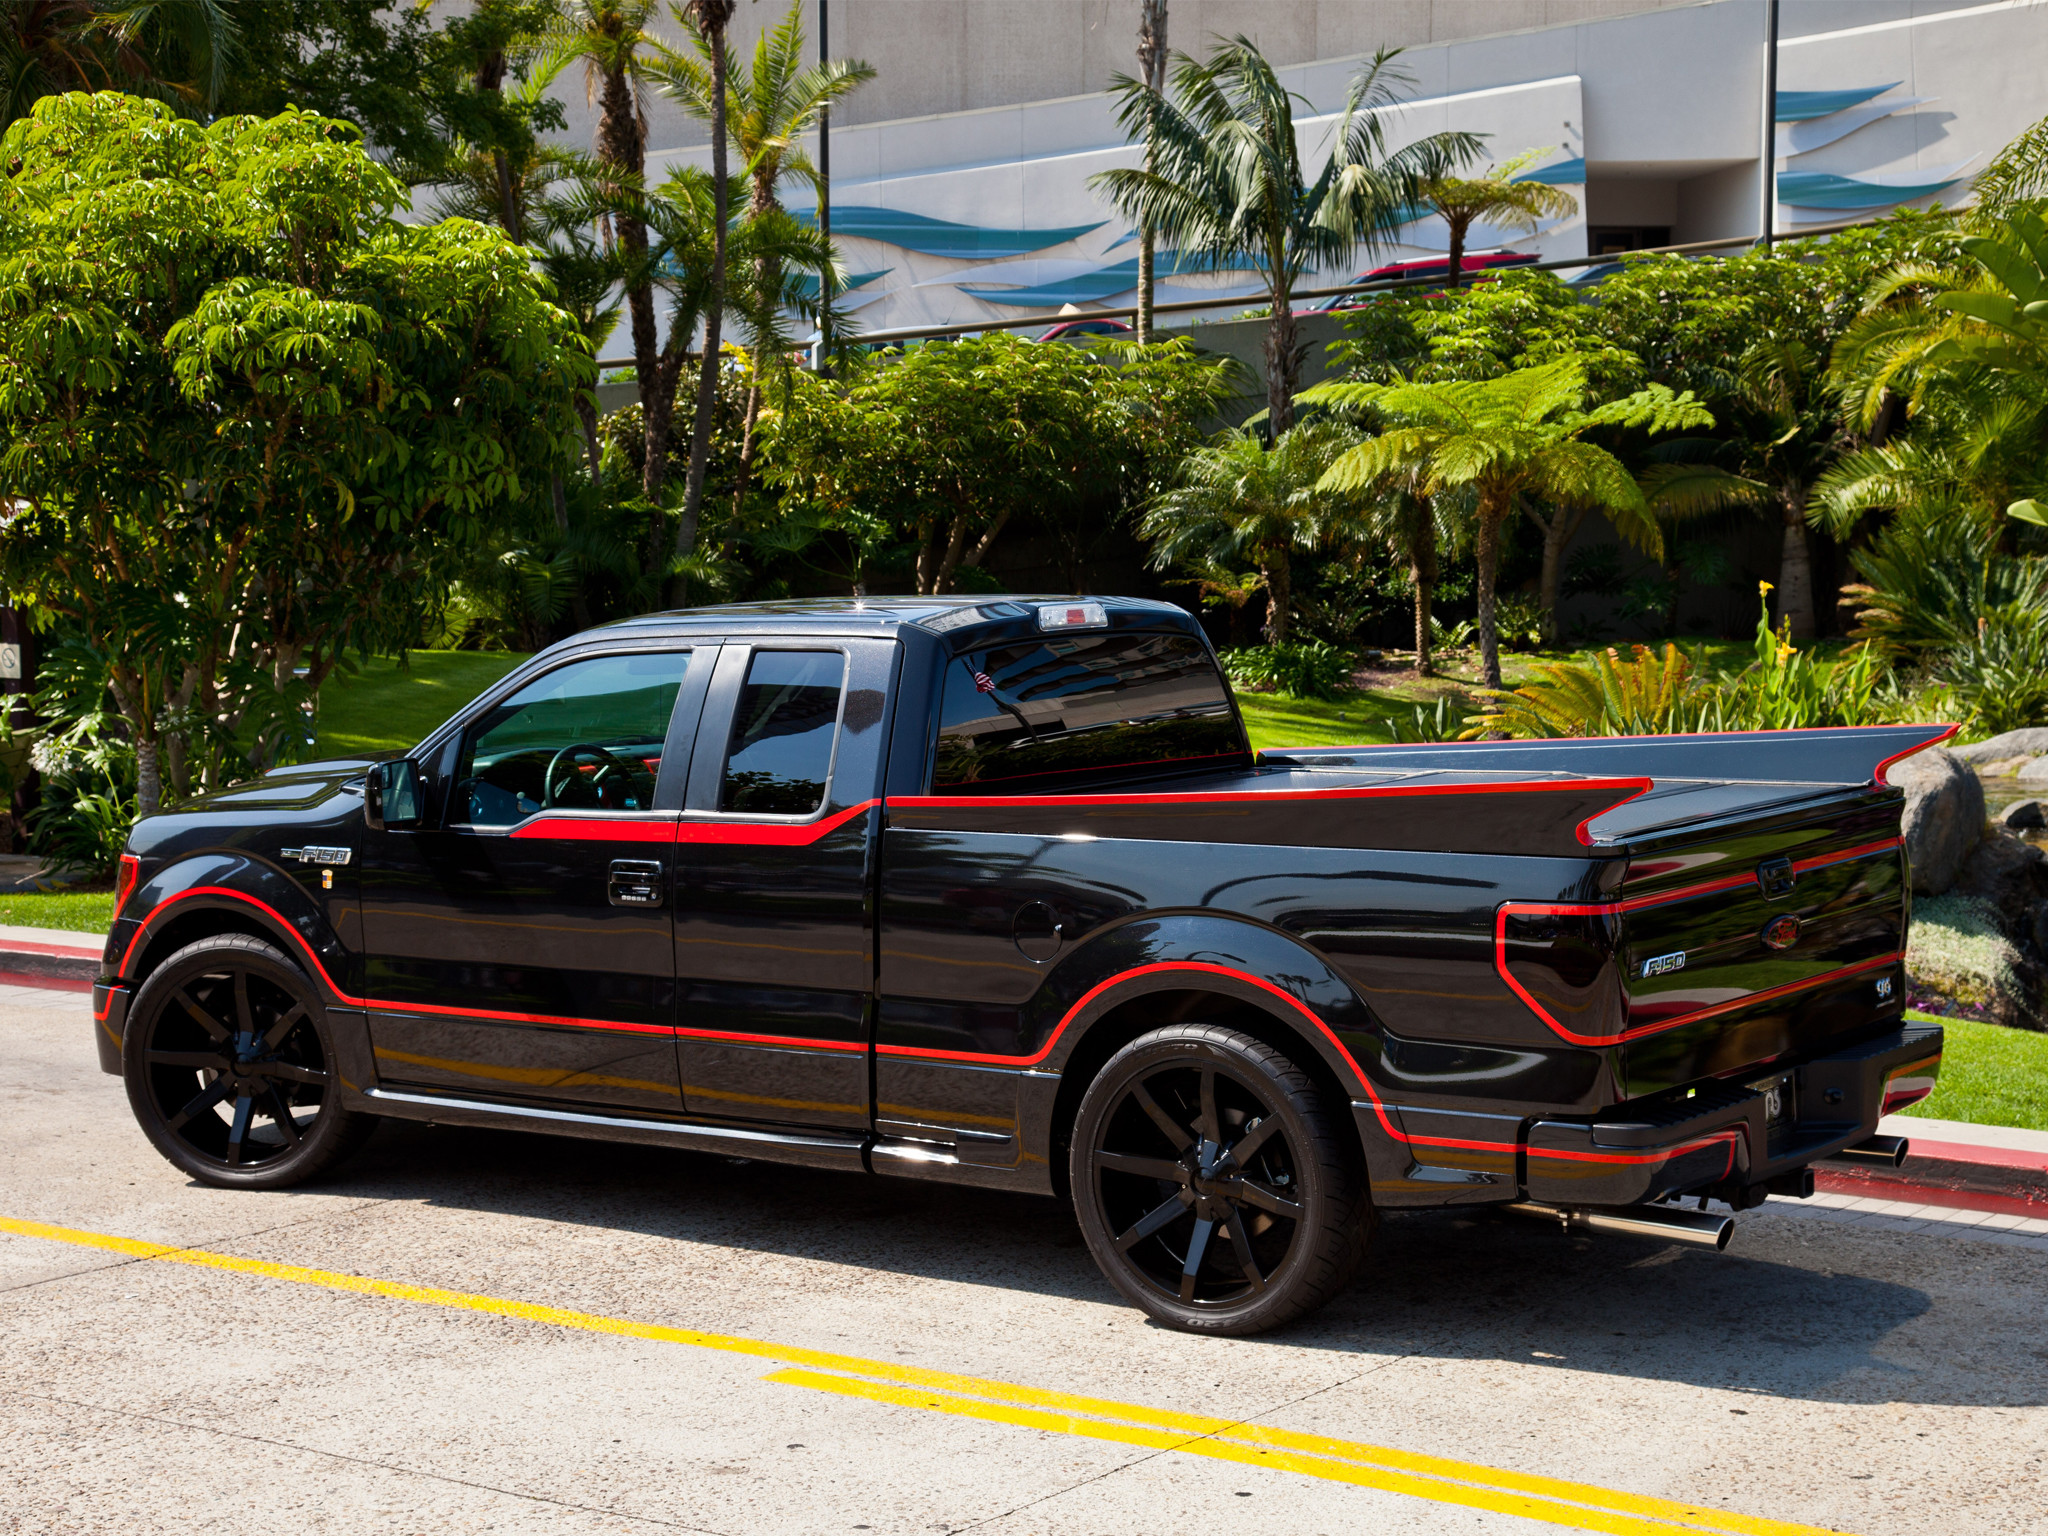 Cool Truck Backgrounds 56 Images